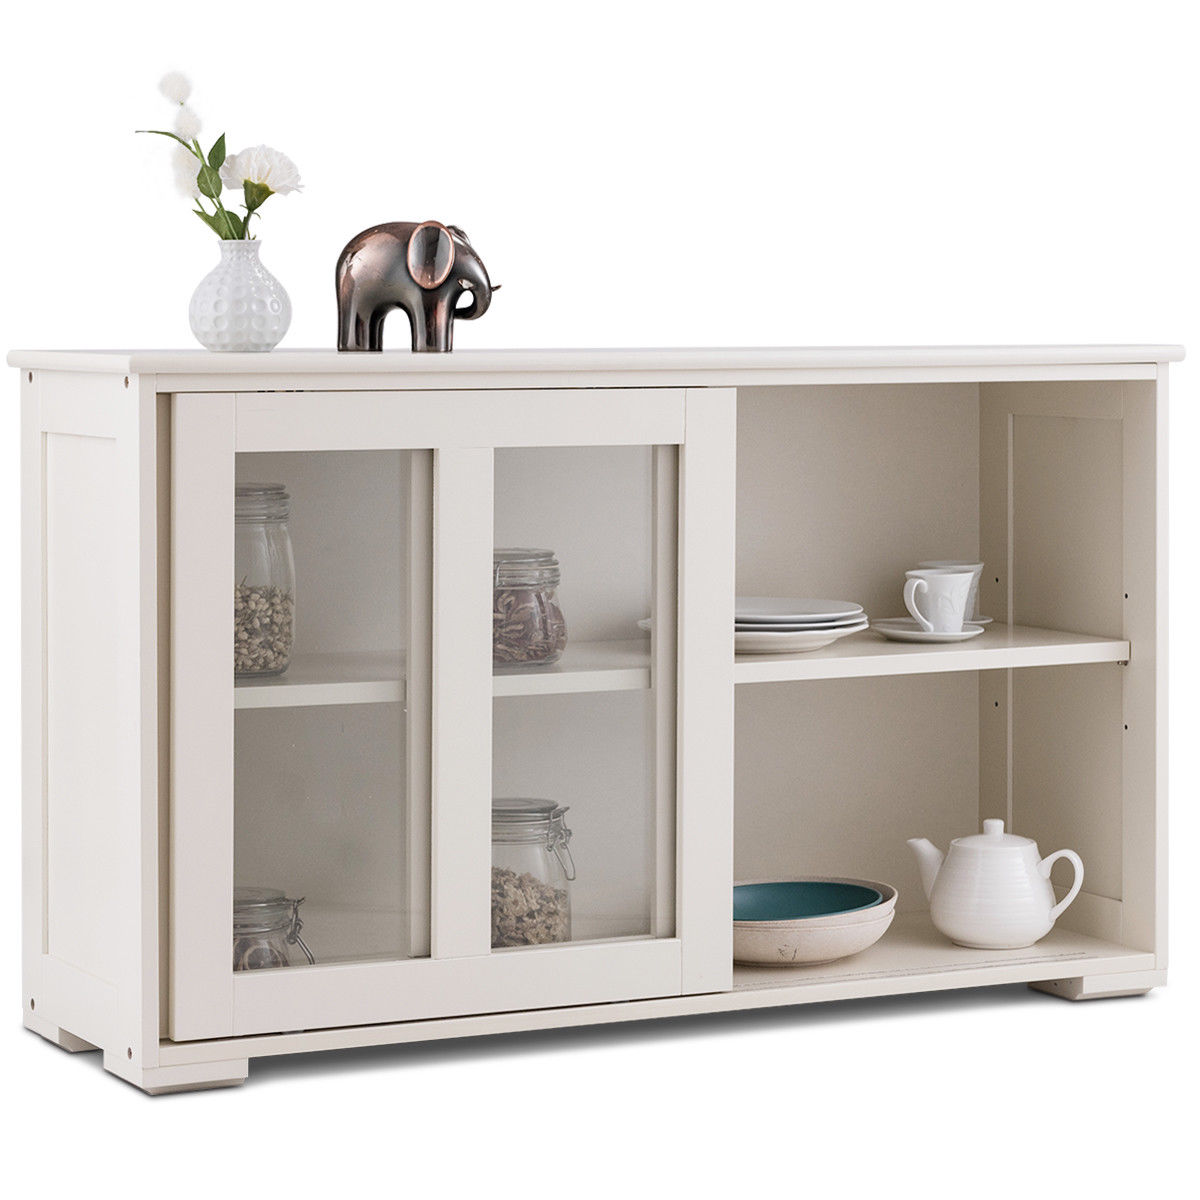 Costway Storage Cabinet Sideboard Buffet Cupboard Glass Sliding Door Pantry Kitchen New